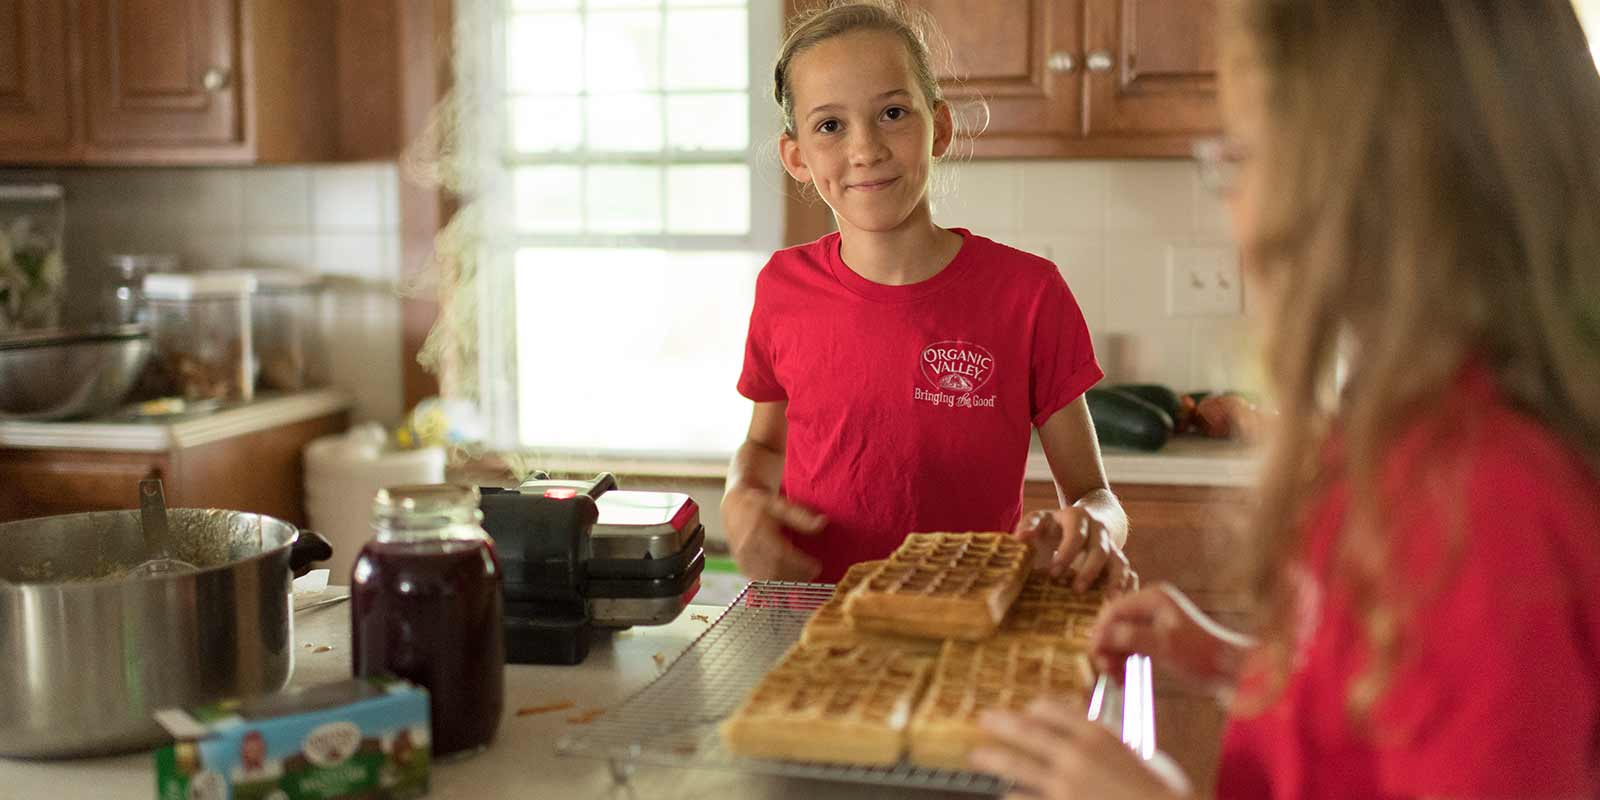 A girl wearing a red shirt smiles at the camera while standing in front of a pile of freshly made waffles in her family's kitchen